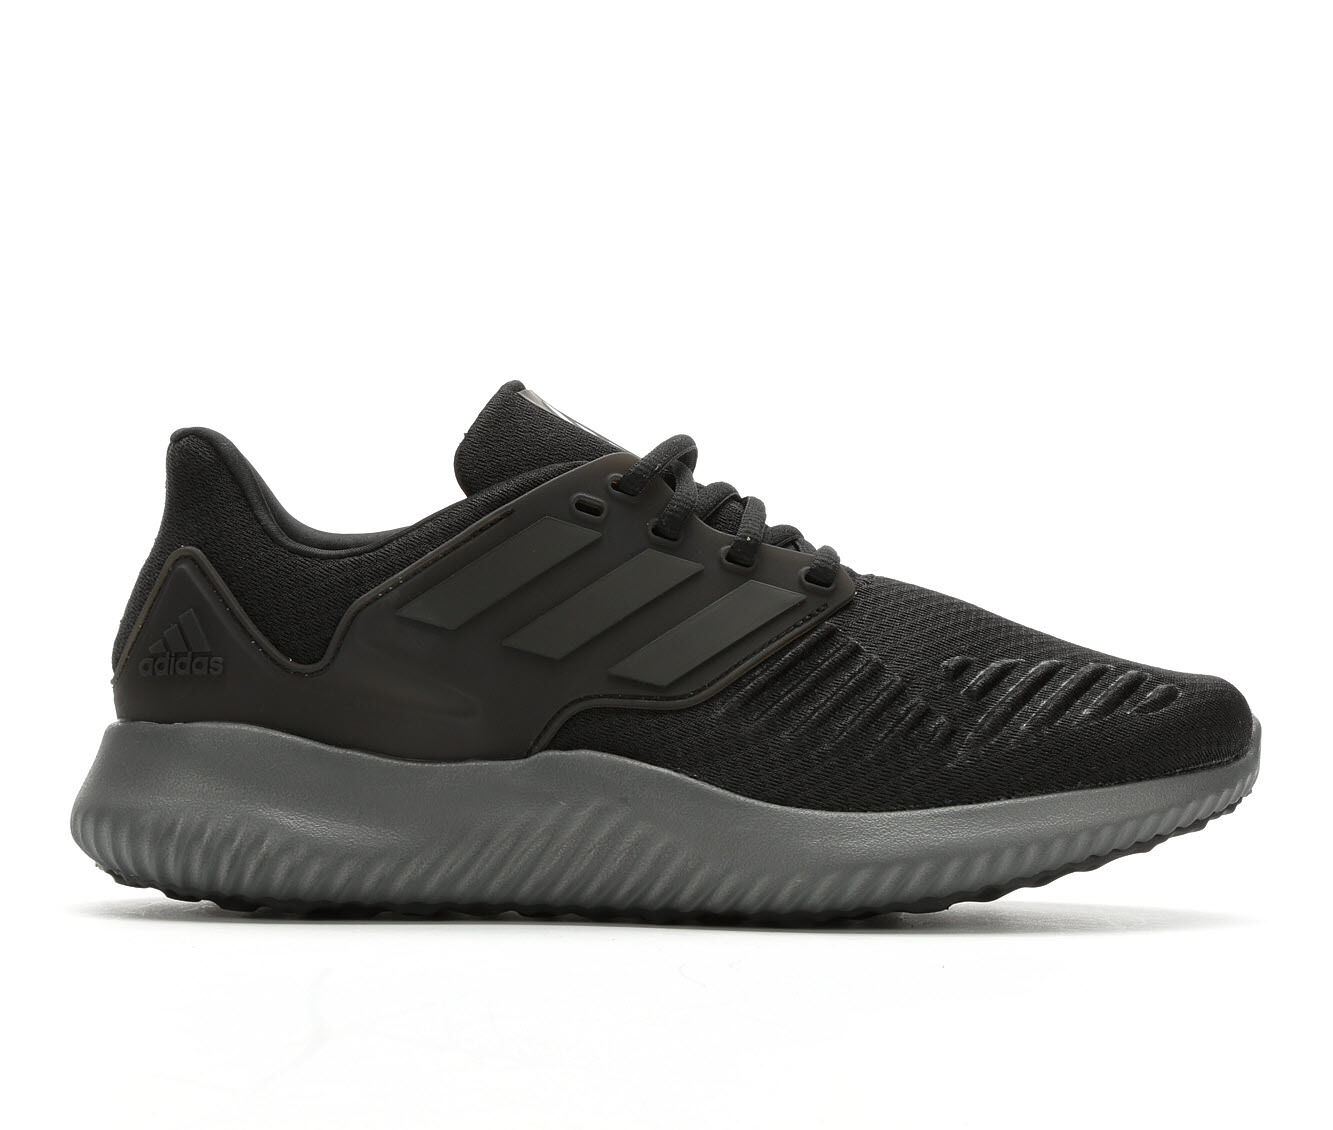 Men's Adidas Alphabounce RC 2 Running Shoes Blk/Gry